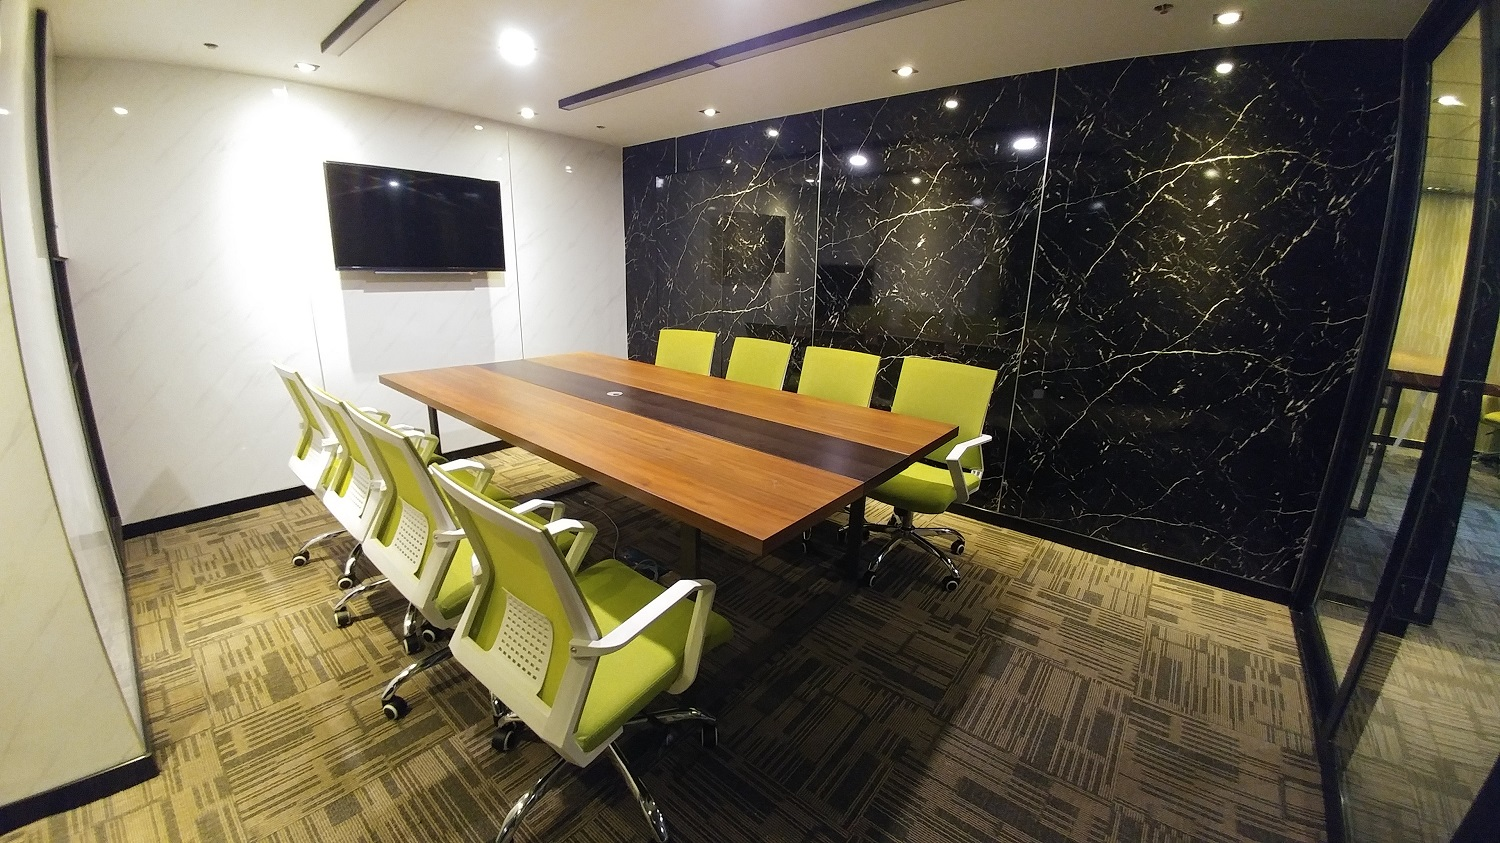 kpc-tst-meeting-room-1500